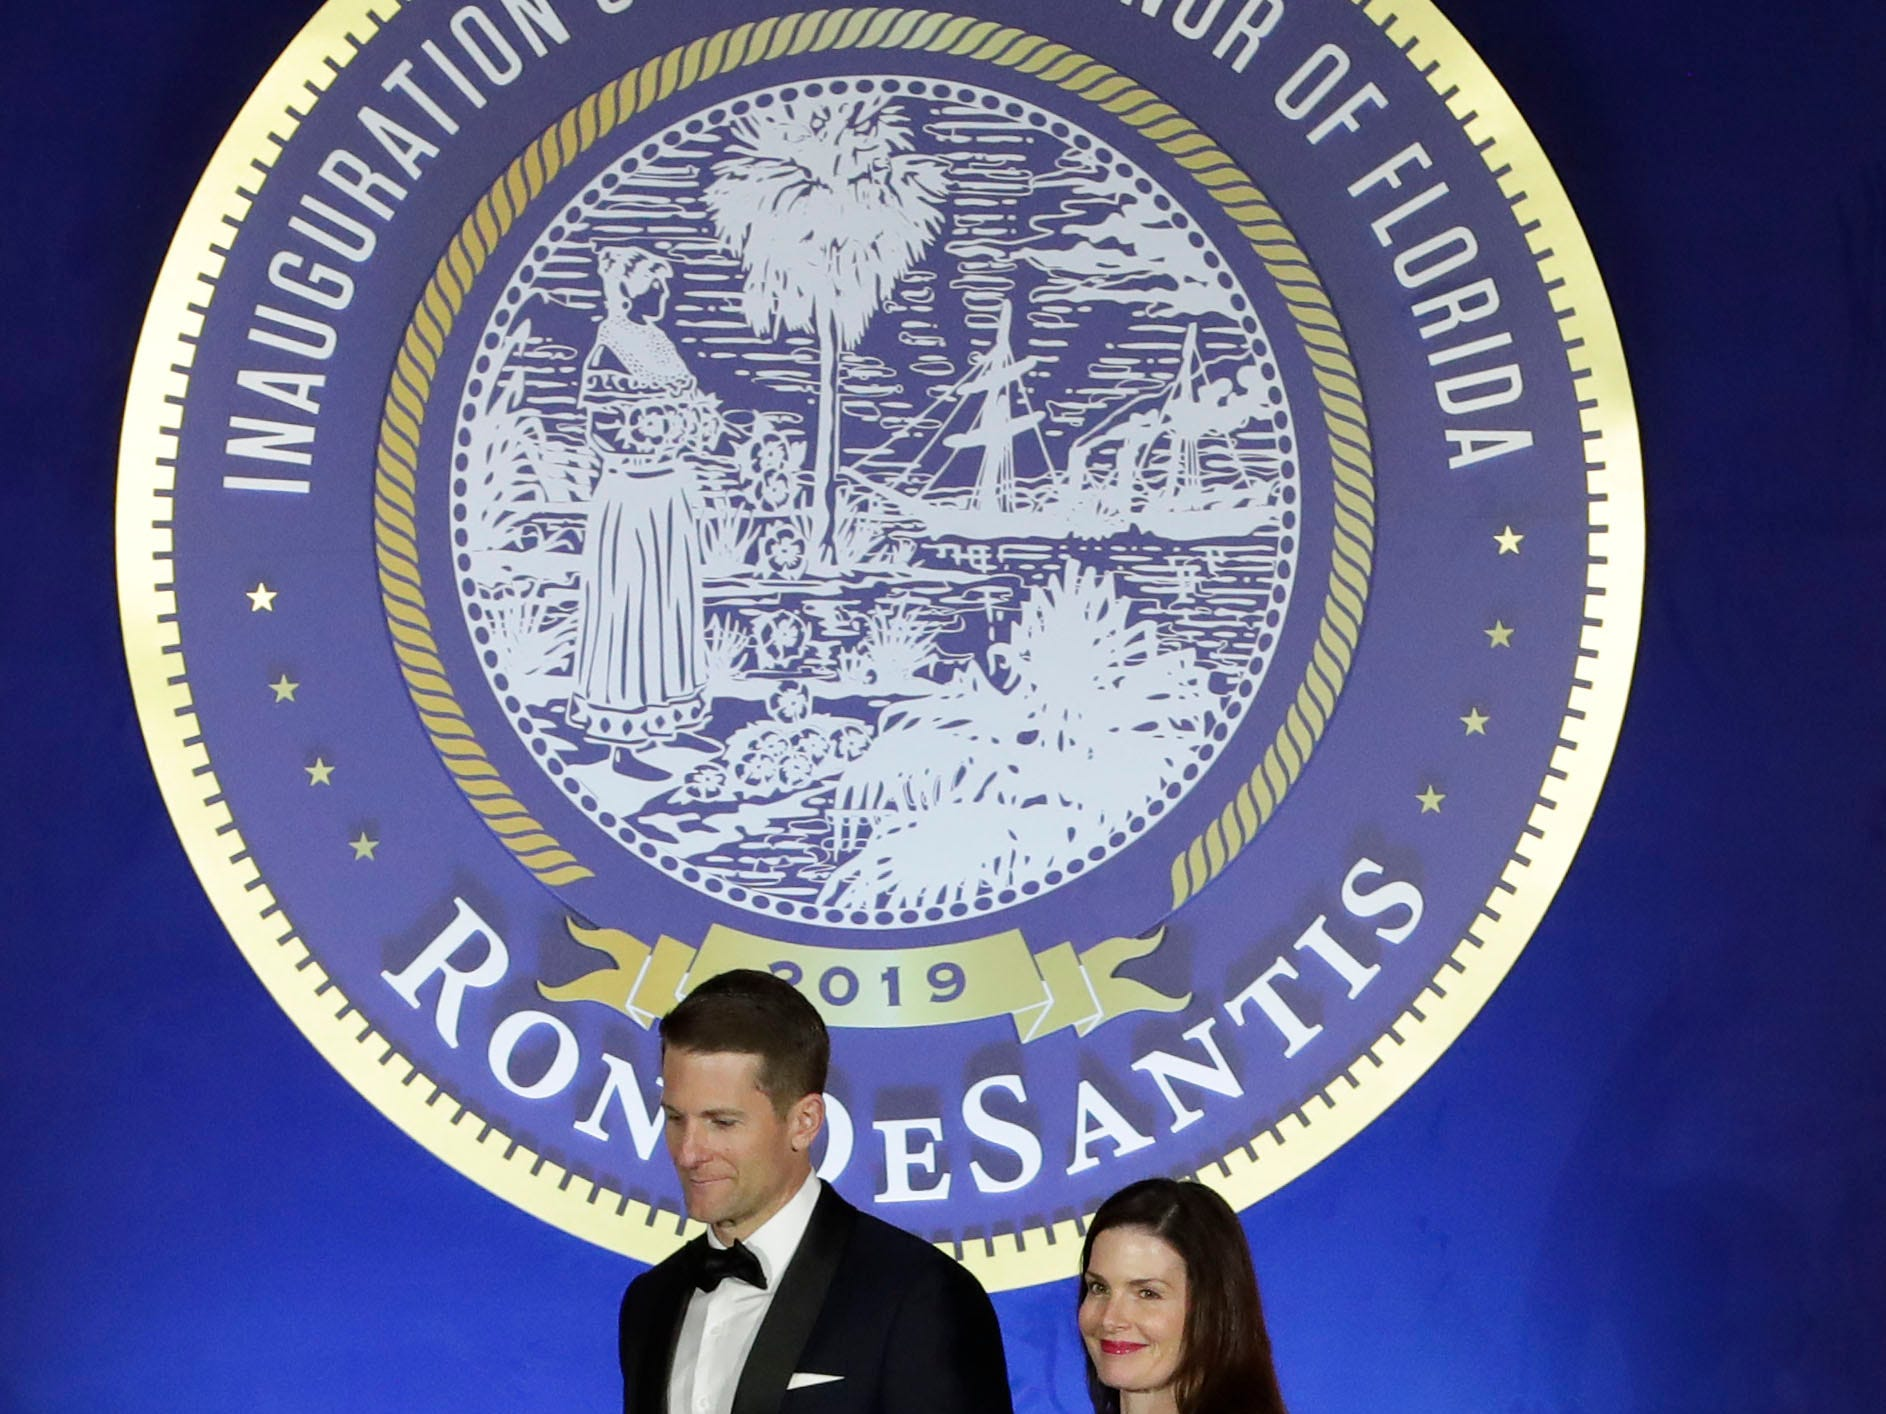 Hundreds of guests from all over Florida attend Florida's 46th Governor's Inaugural Ball at the Tucker Civic Center, Tuesday, Jan. 8, 2019.